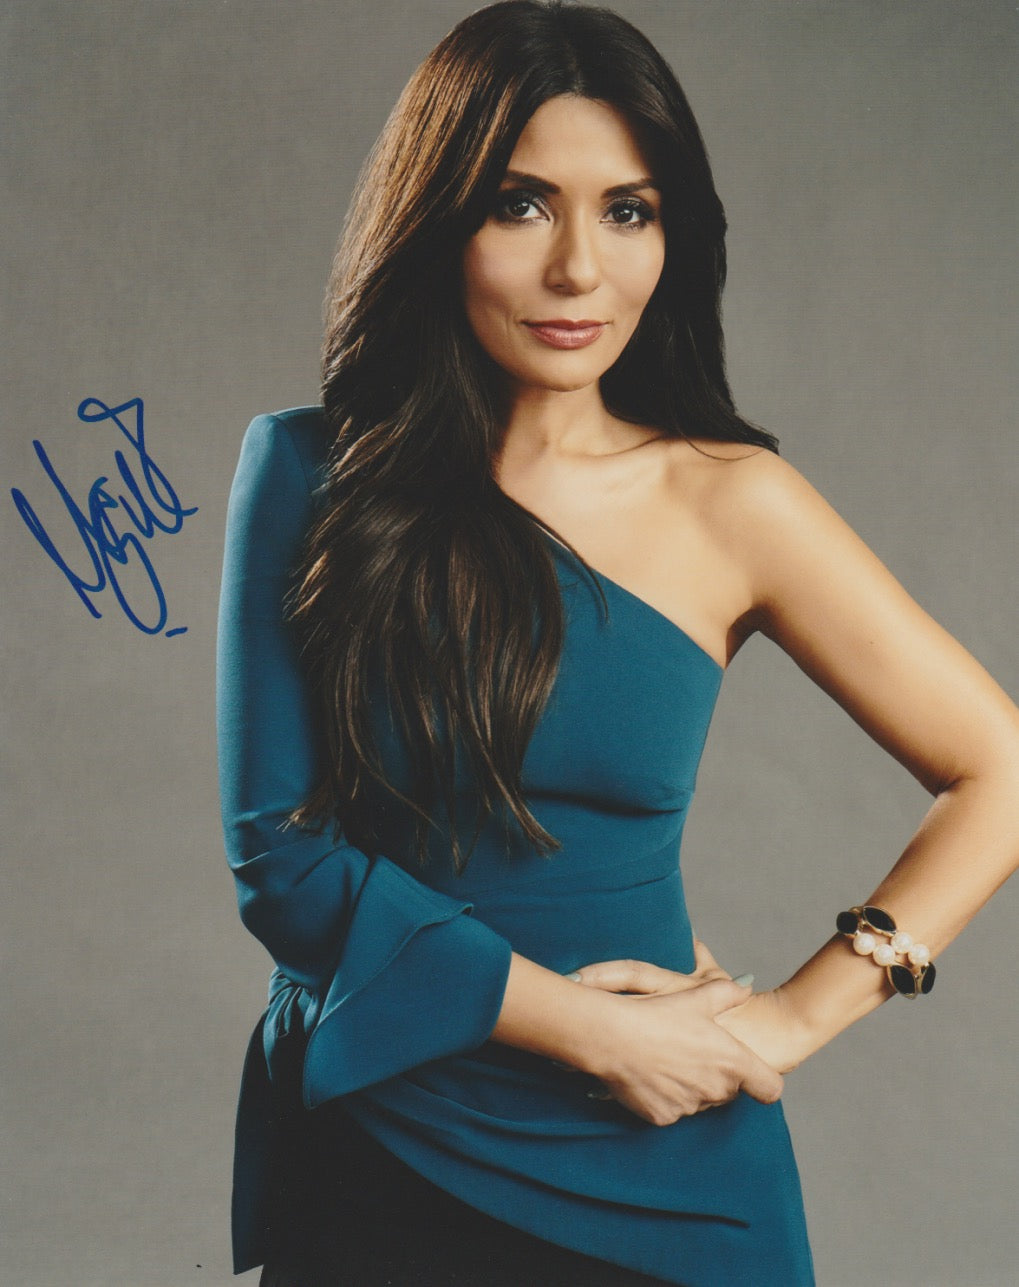 Marisol Nichols Riverdale Signed Autograph 8x10 Photo - Outlaw Hobbies Authentic Autographs